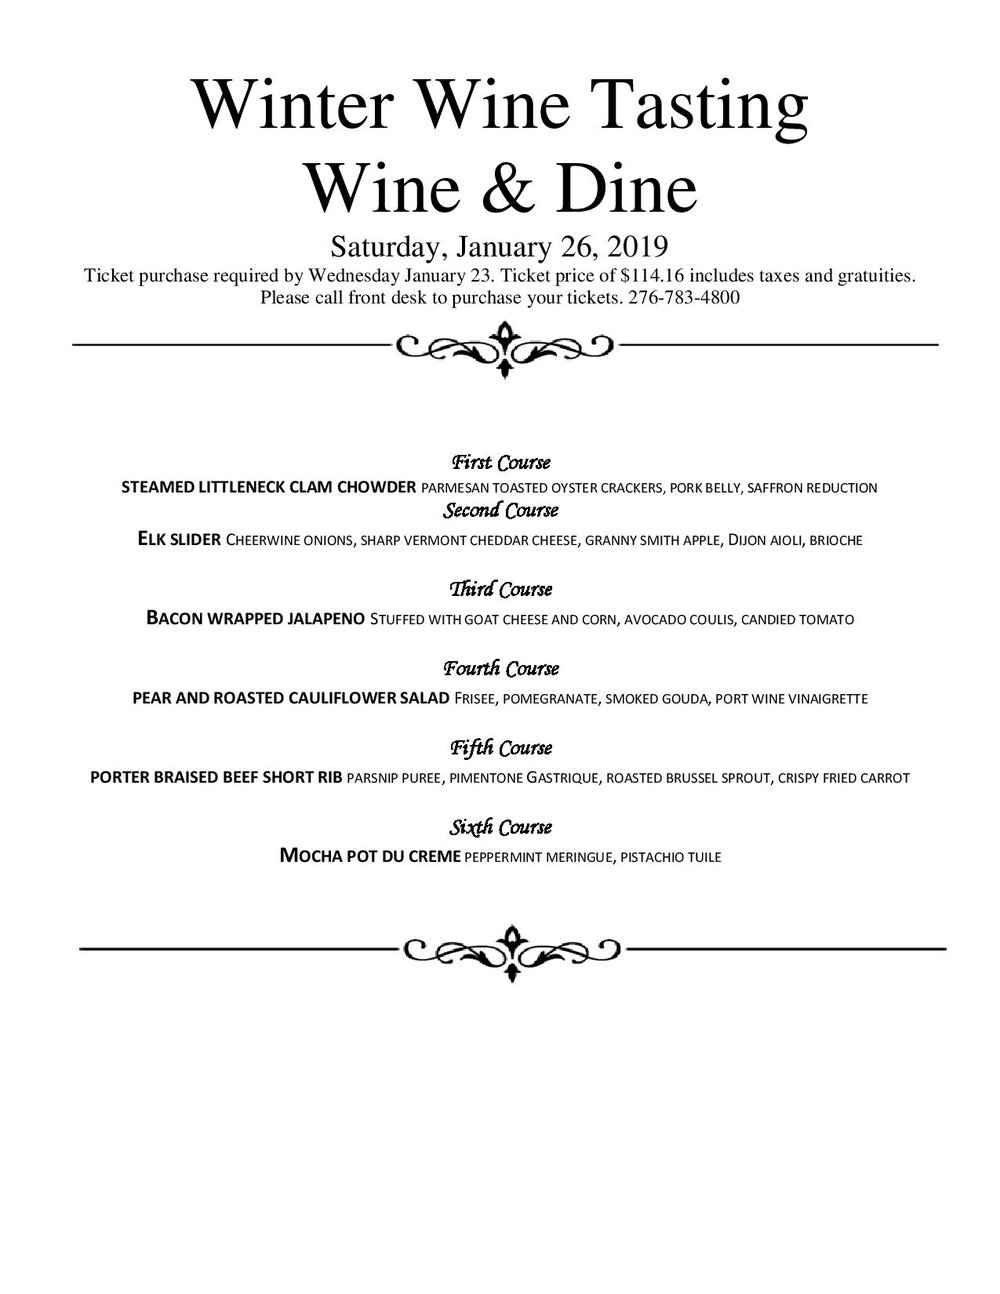 Winter Wine and Dine Food Only correct pdf-page-001.jpg